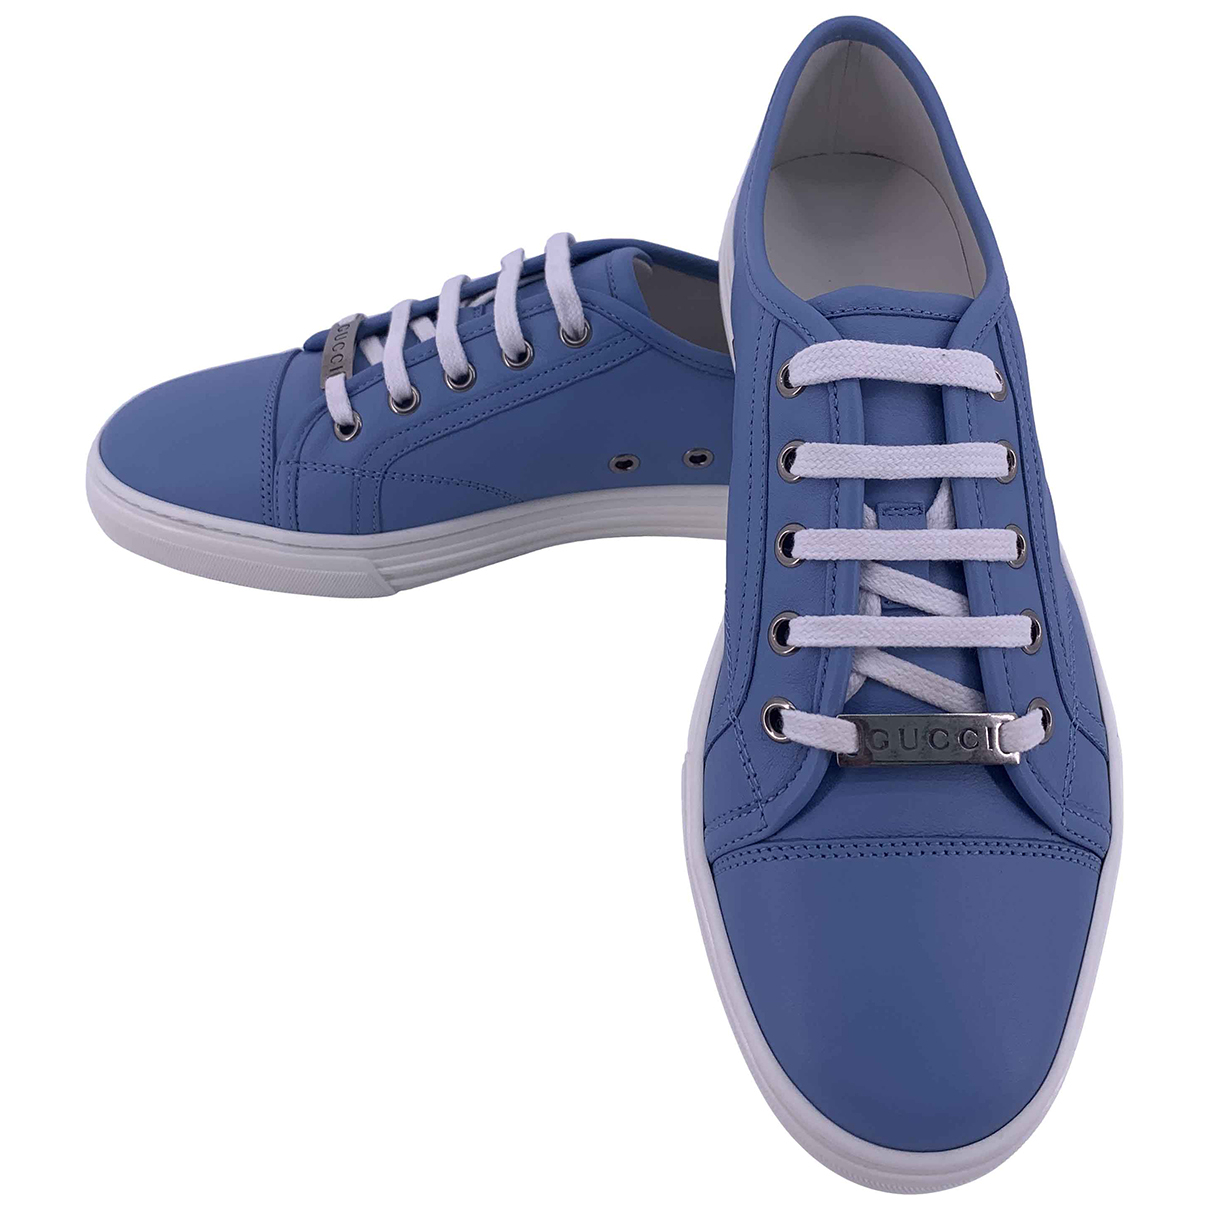 Gucci N Blue Leather Trainers for Women 39.5 IT